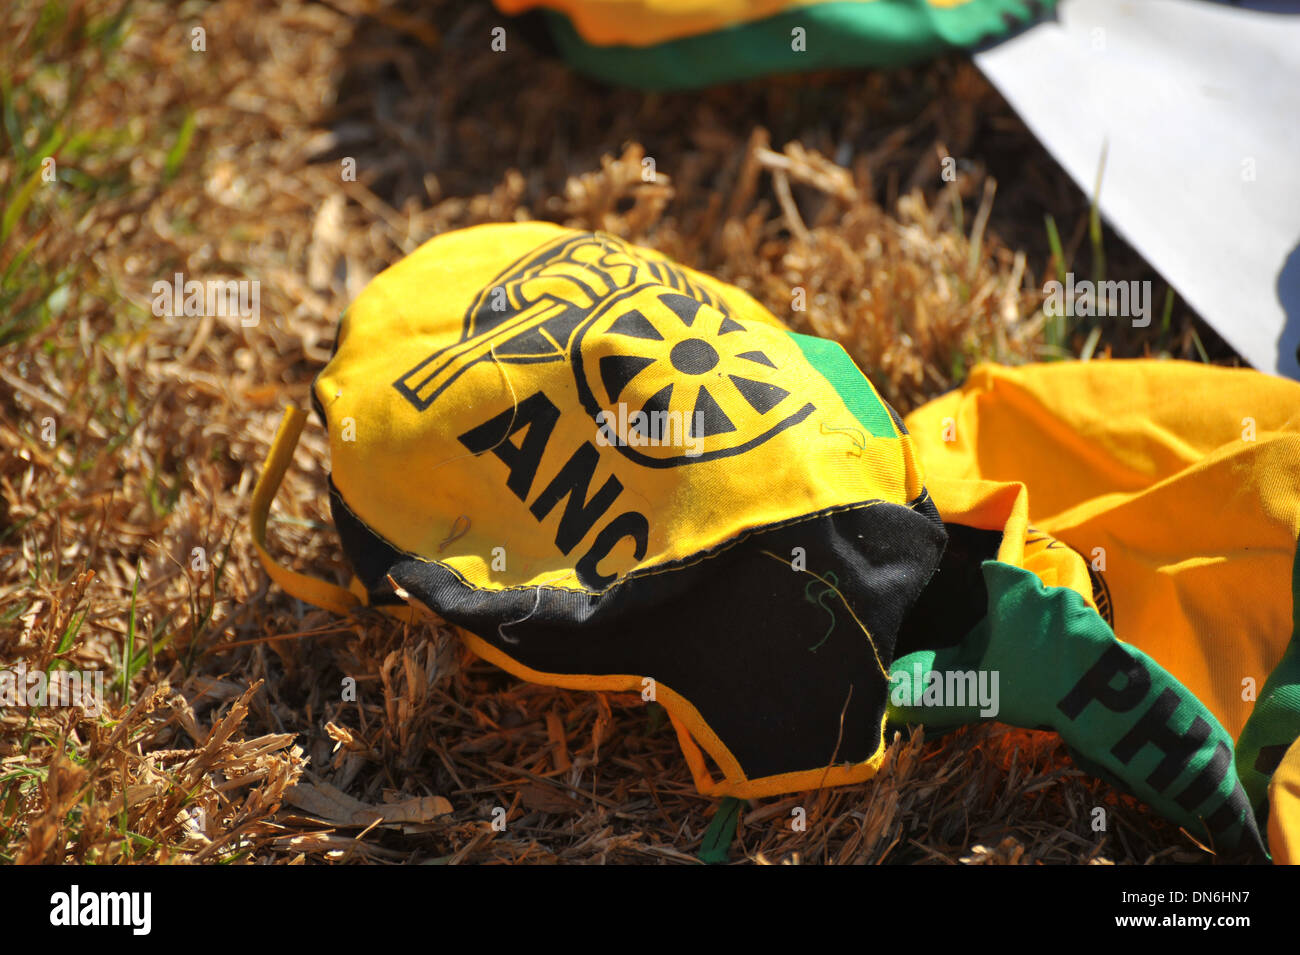 An ANC political cap on the ground in South Africa. - Stock Image